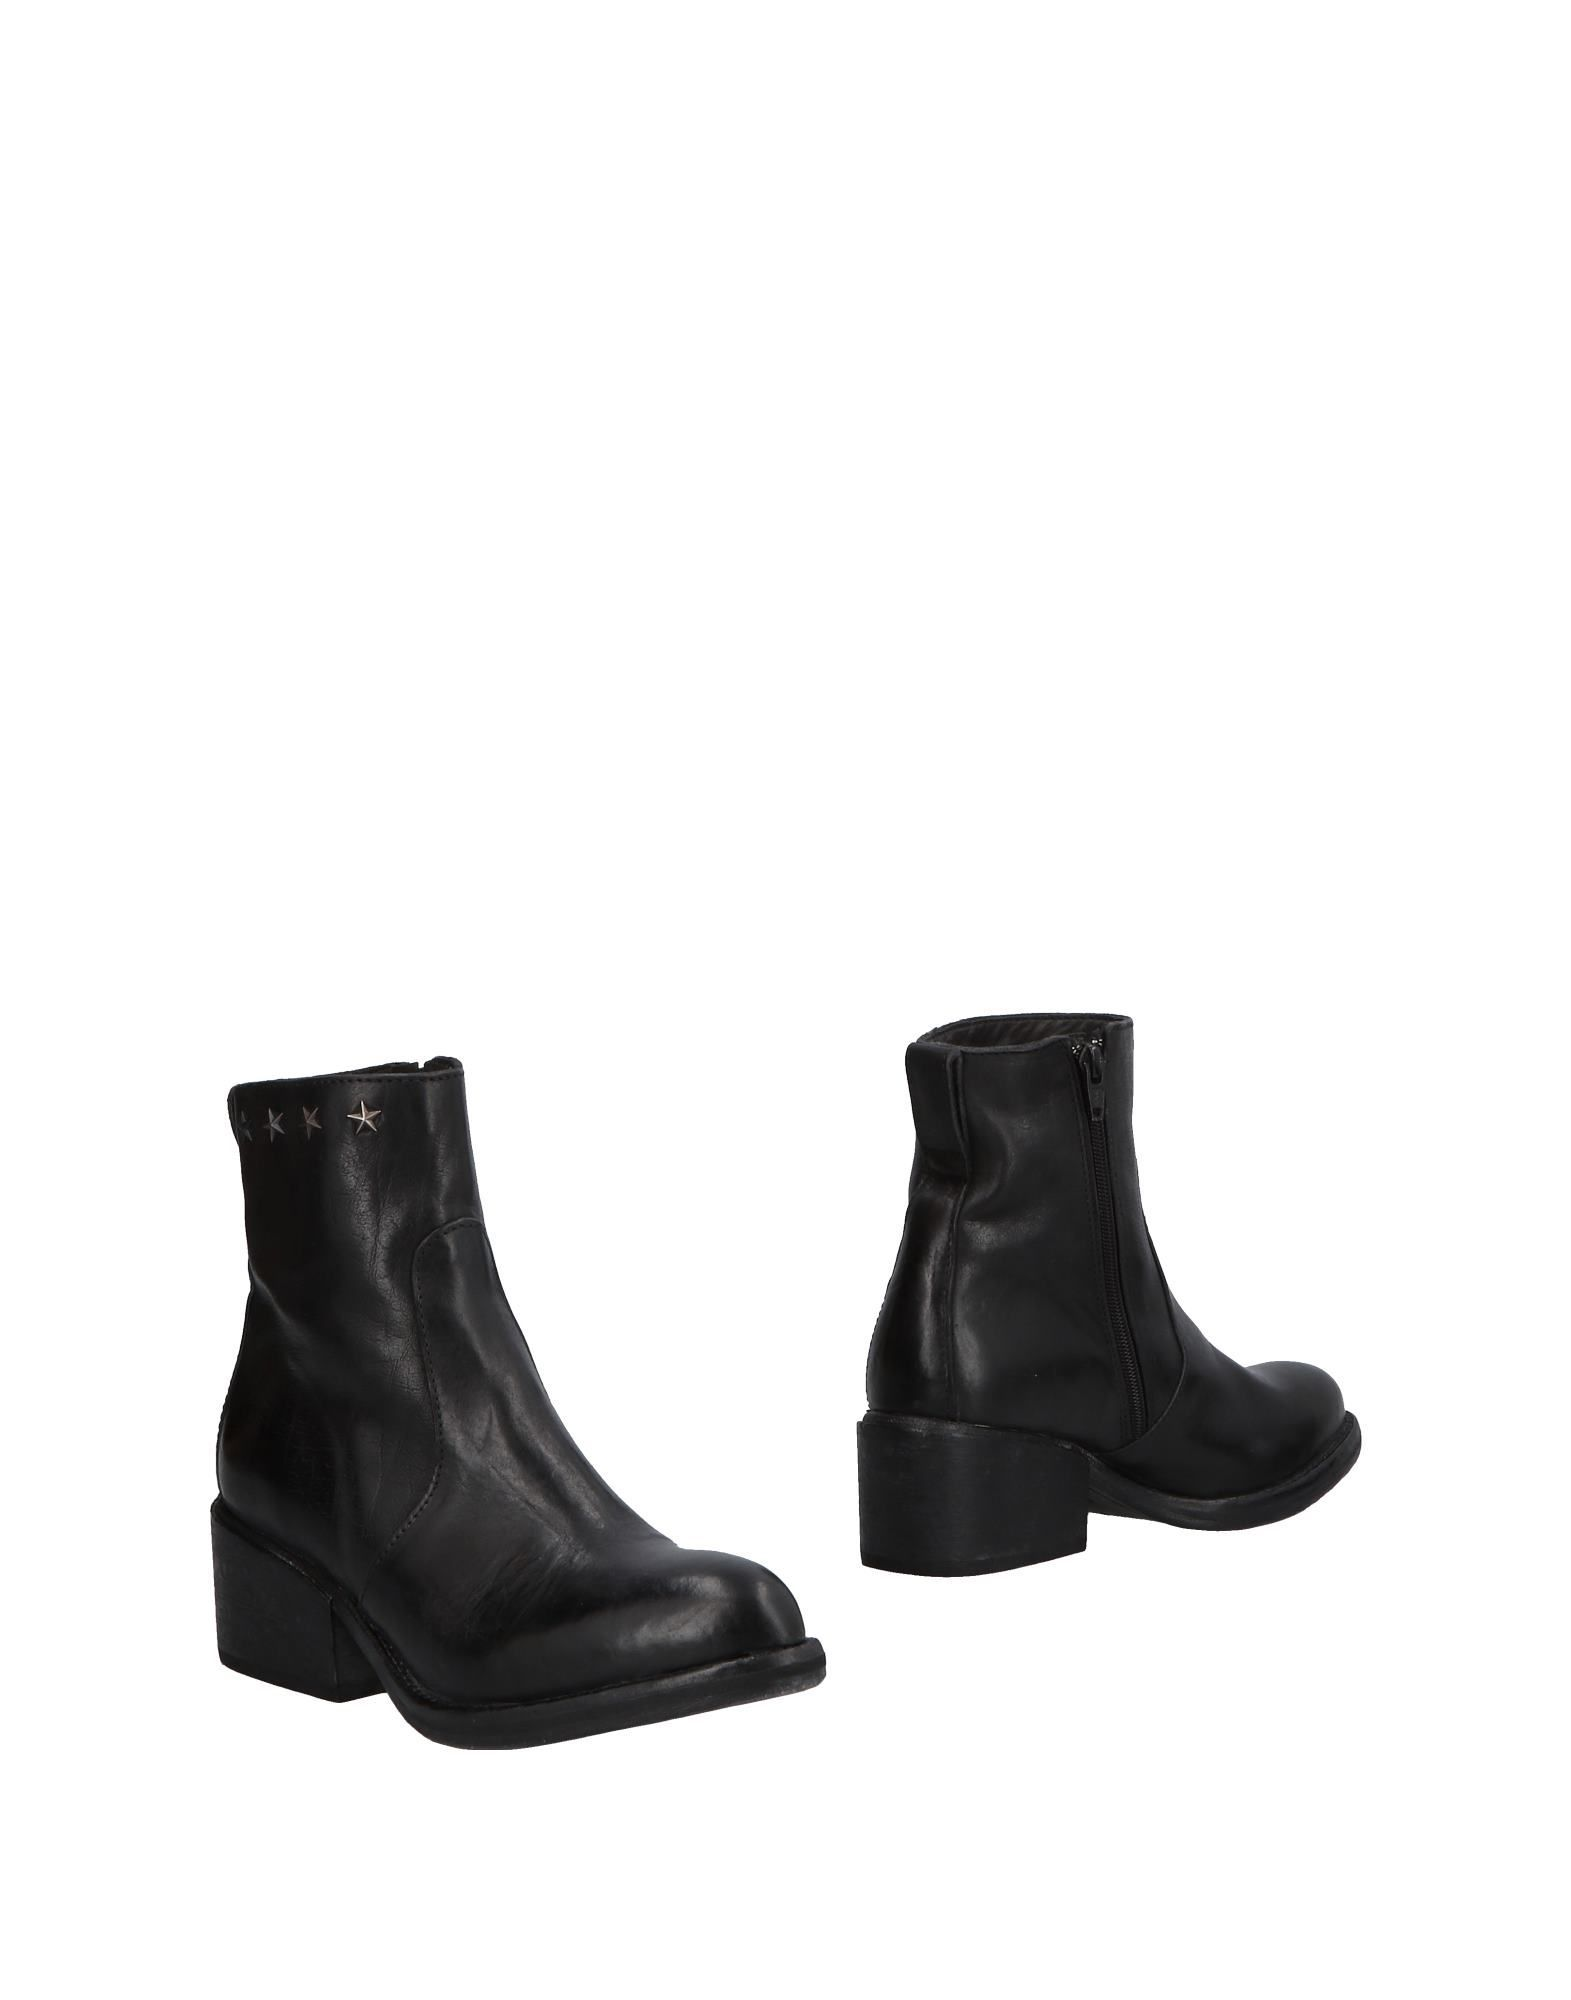 Moma Black Leather Ankle Boots